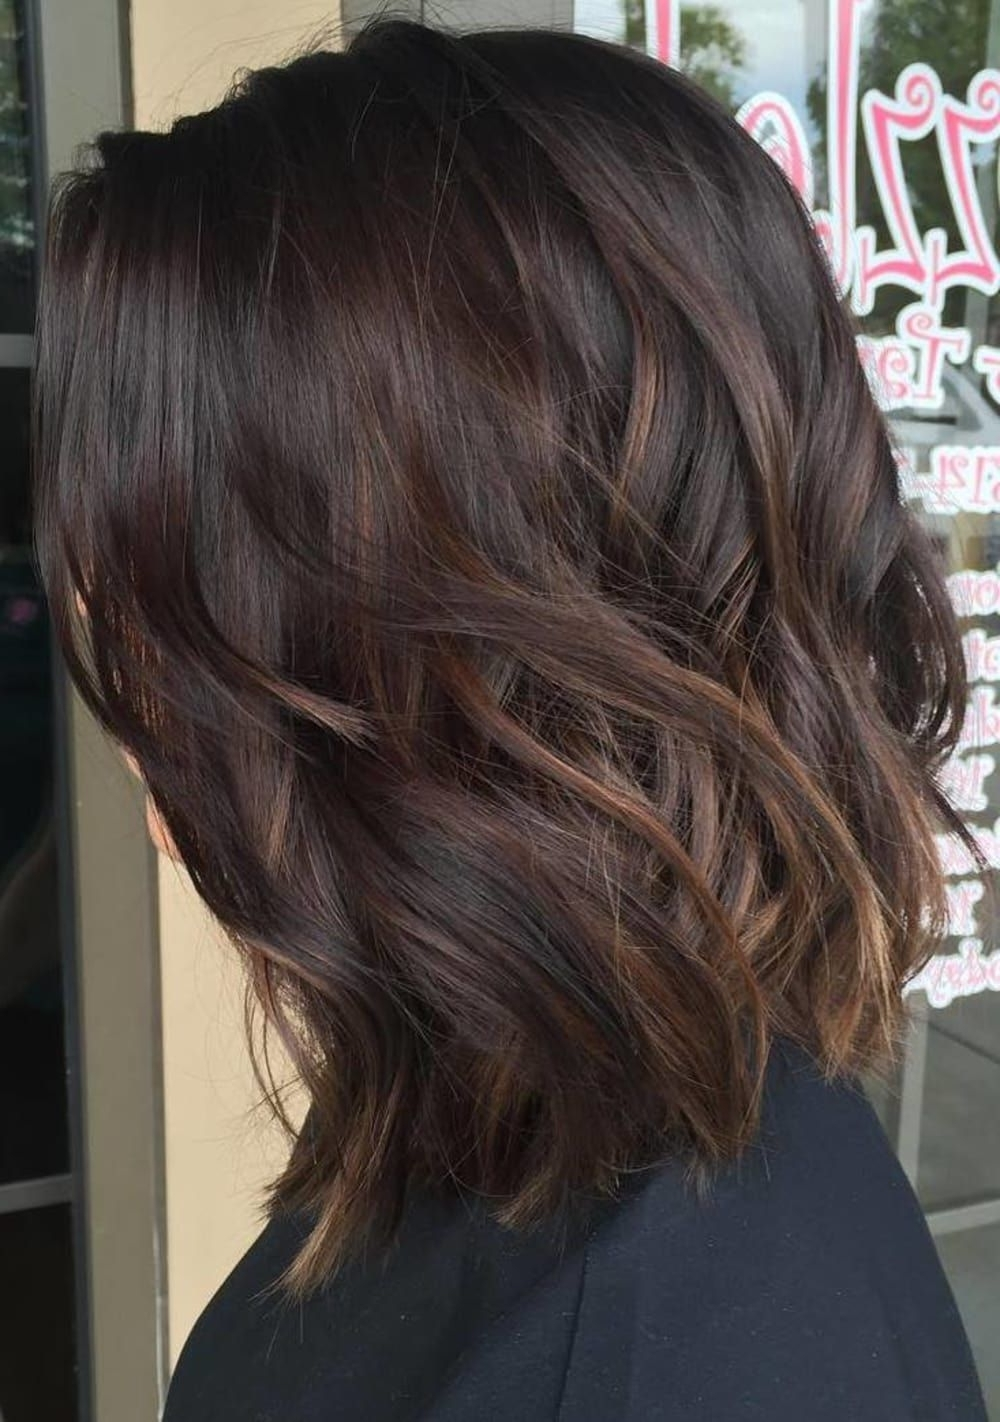 70 Flattering Balayage Hair Color Ideas For 2018 | Stylin Inside Newest Piece Y Haircuts With Subtle Balayage (Gallery 1 of 15)